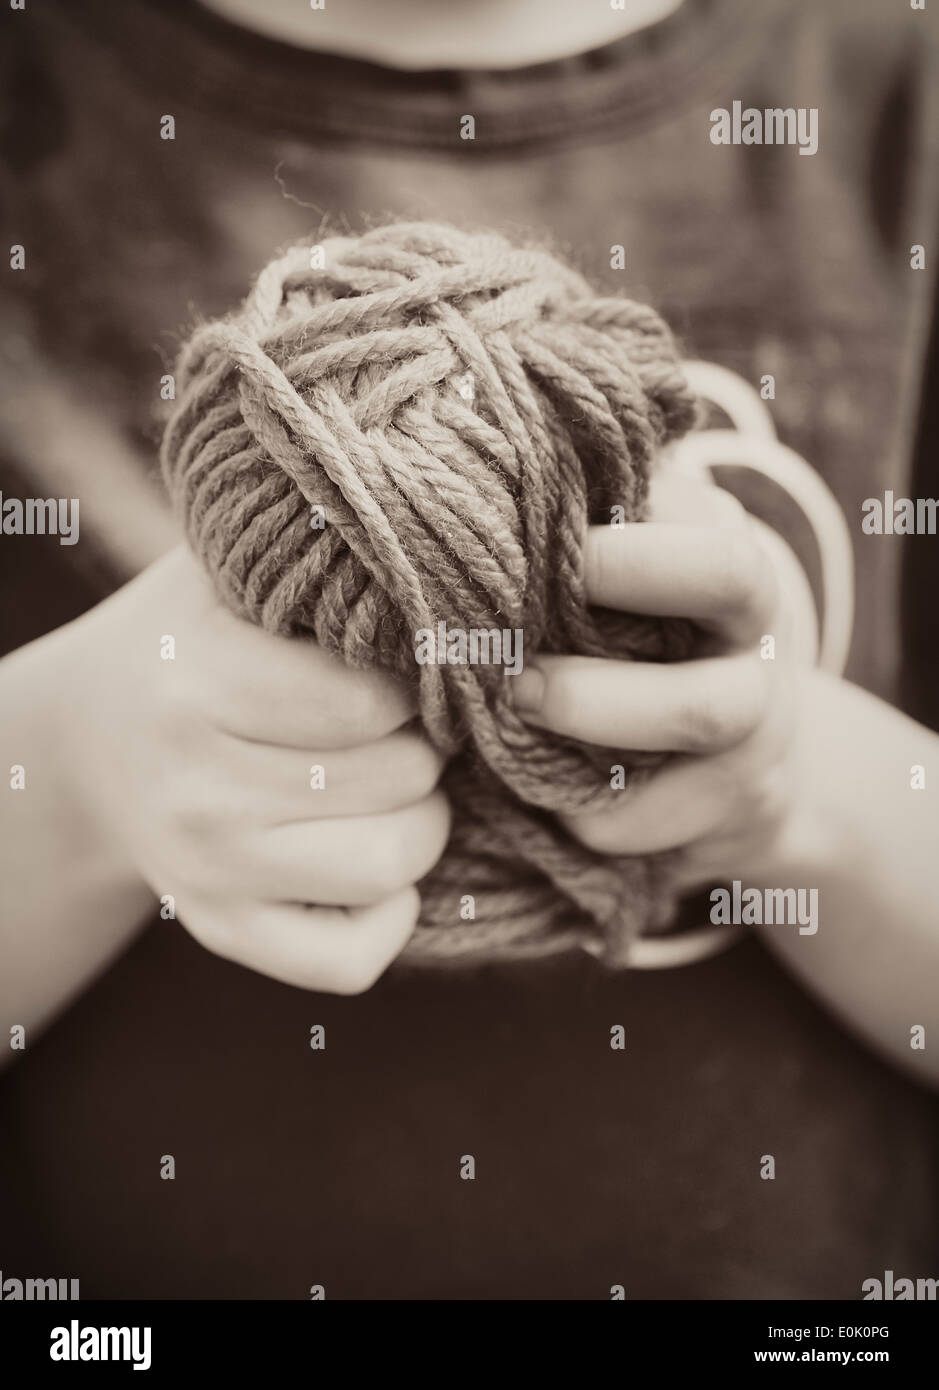 Close up of little girl holding une pelote de laine dans ses mains Photo Stock